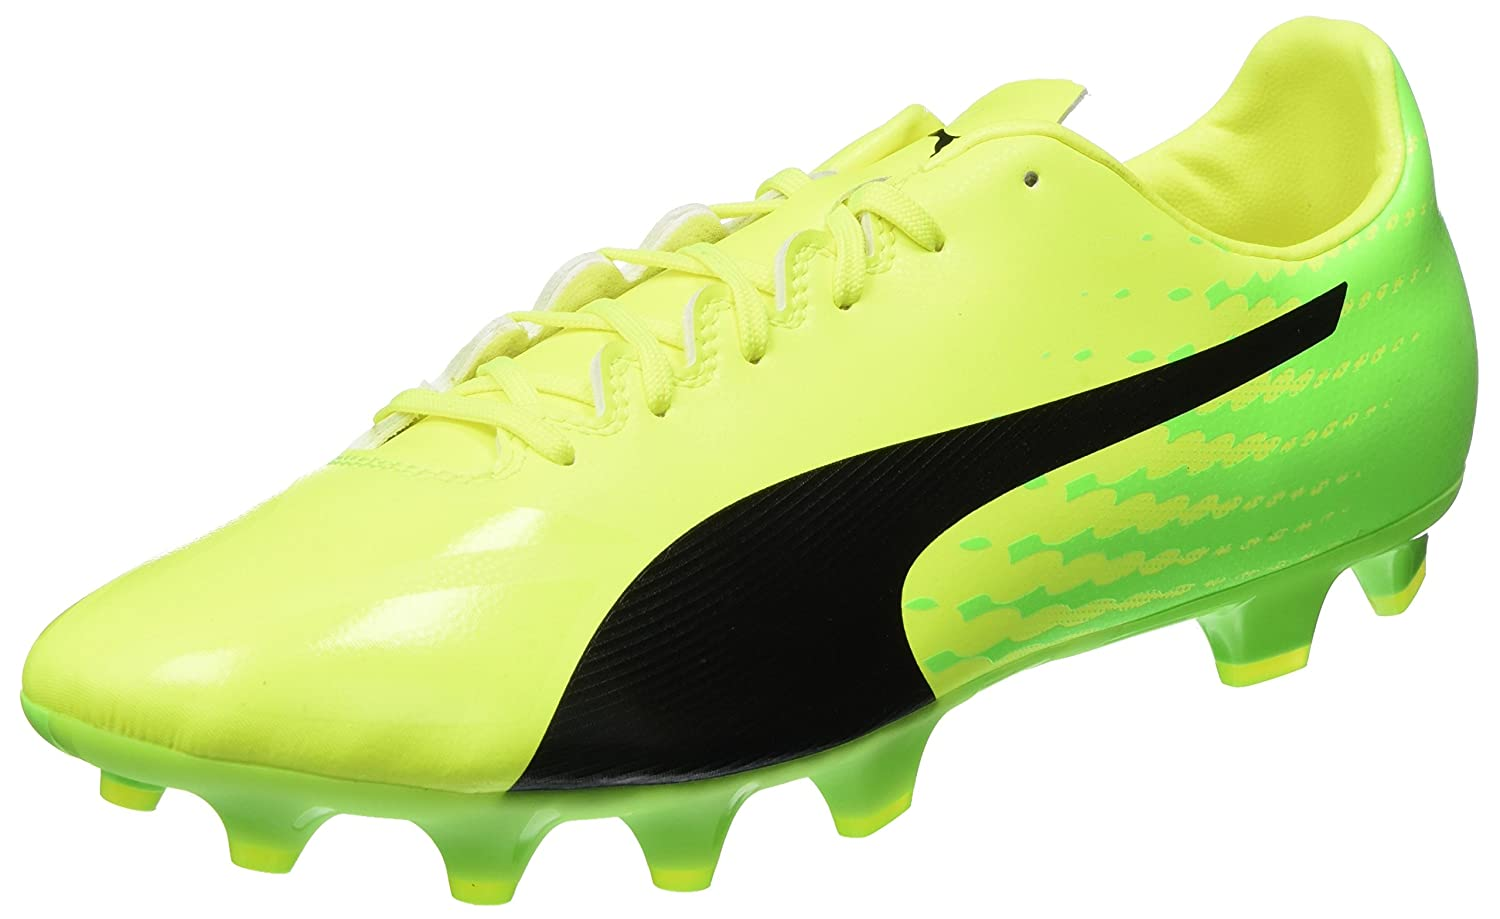 Puma Men s Evospeed 17.2 Fg Football Boots  Buy Online at Low Prices in  India - Amazon.in d92fbe924